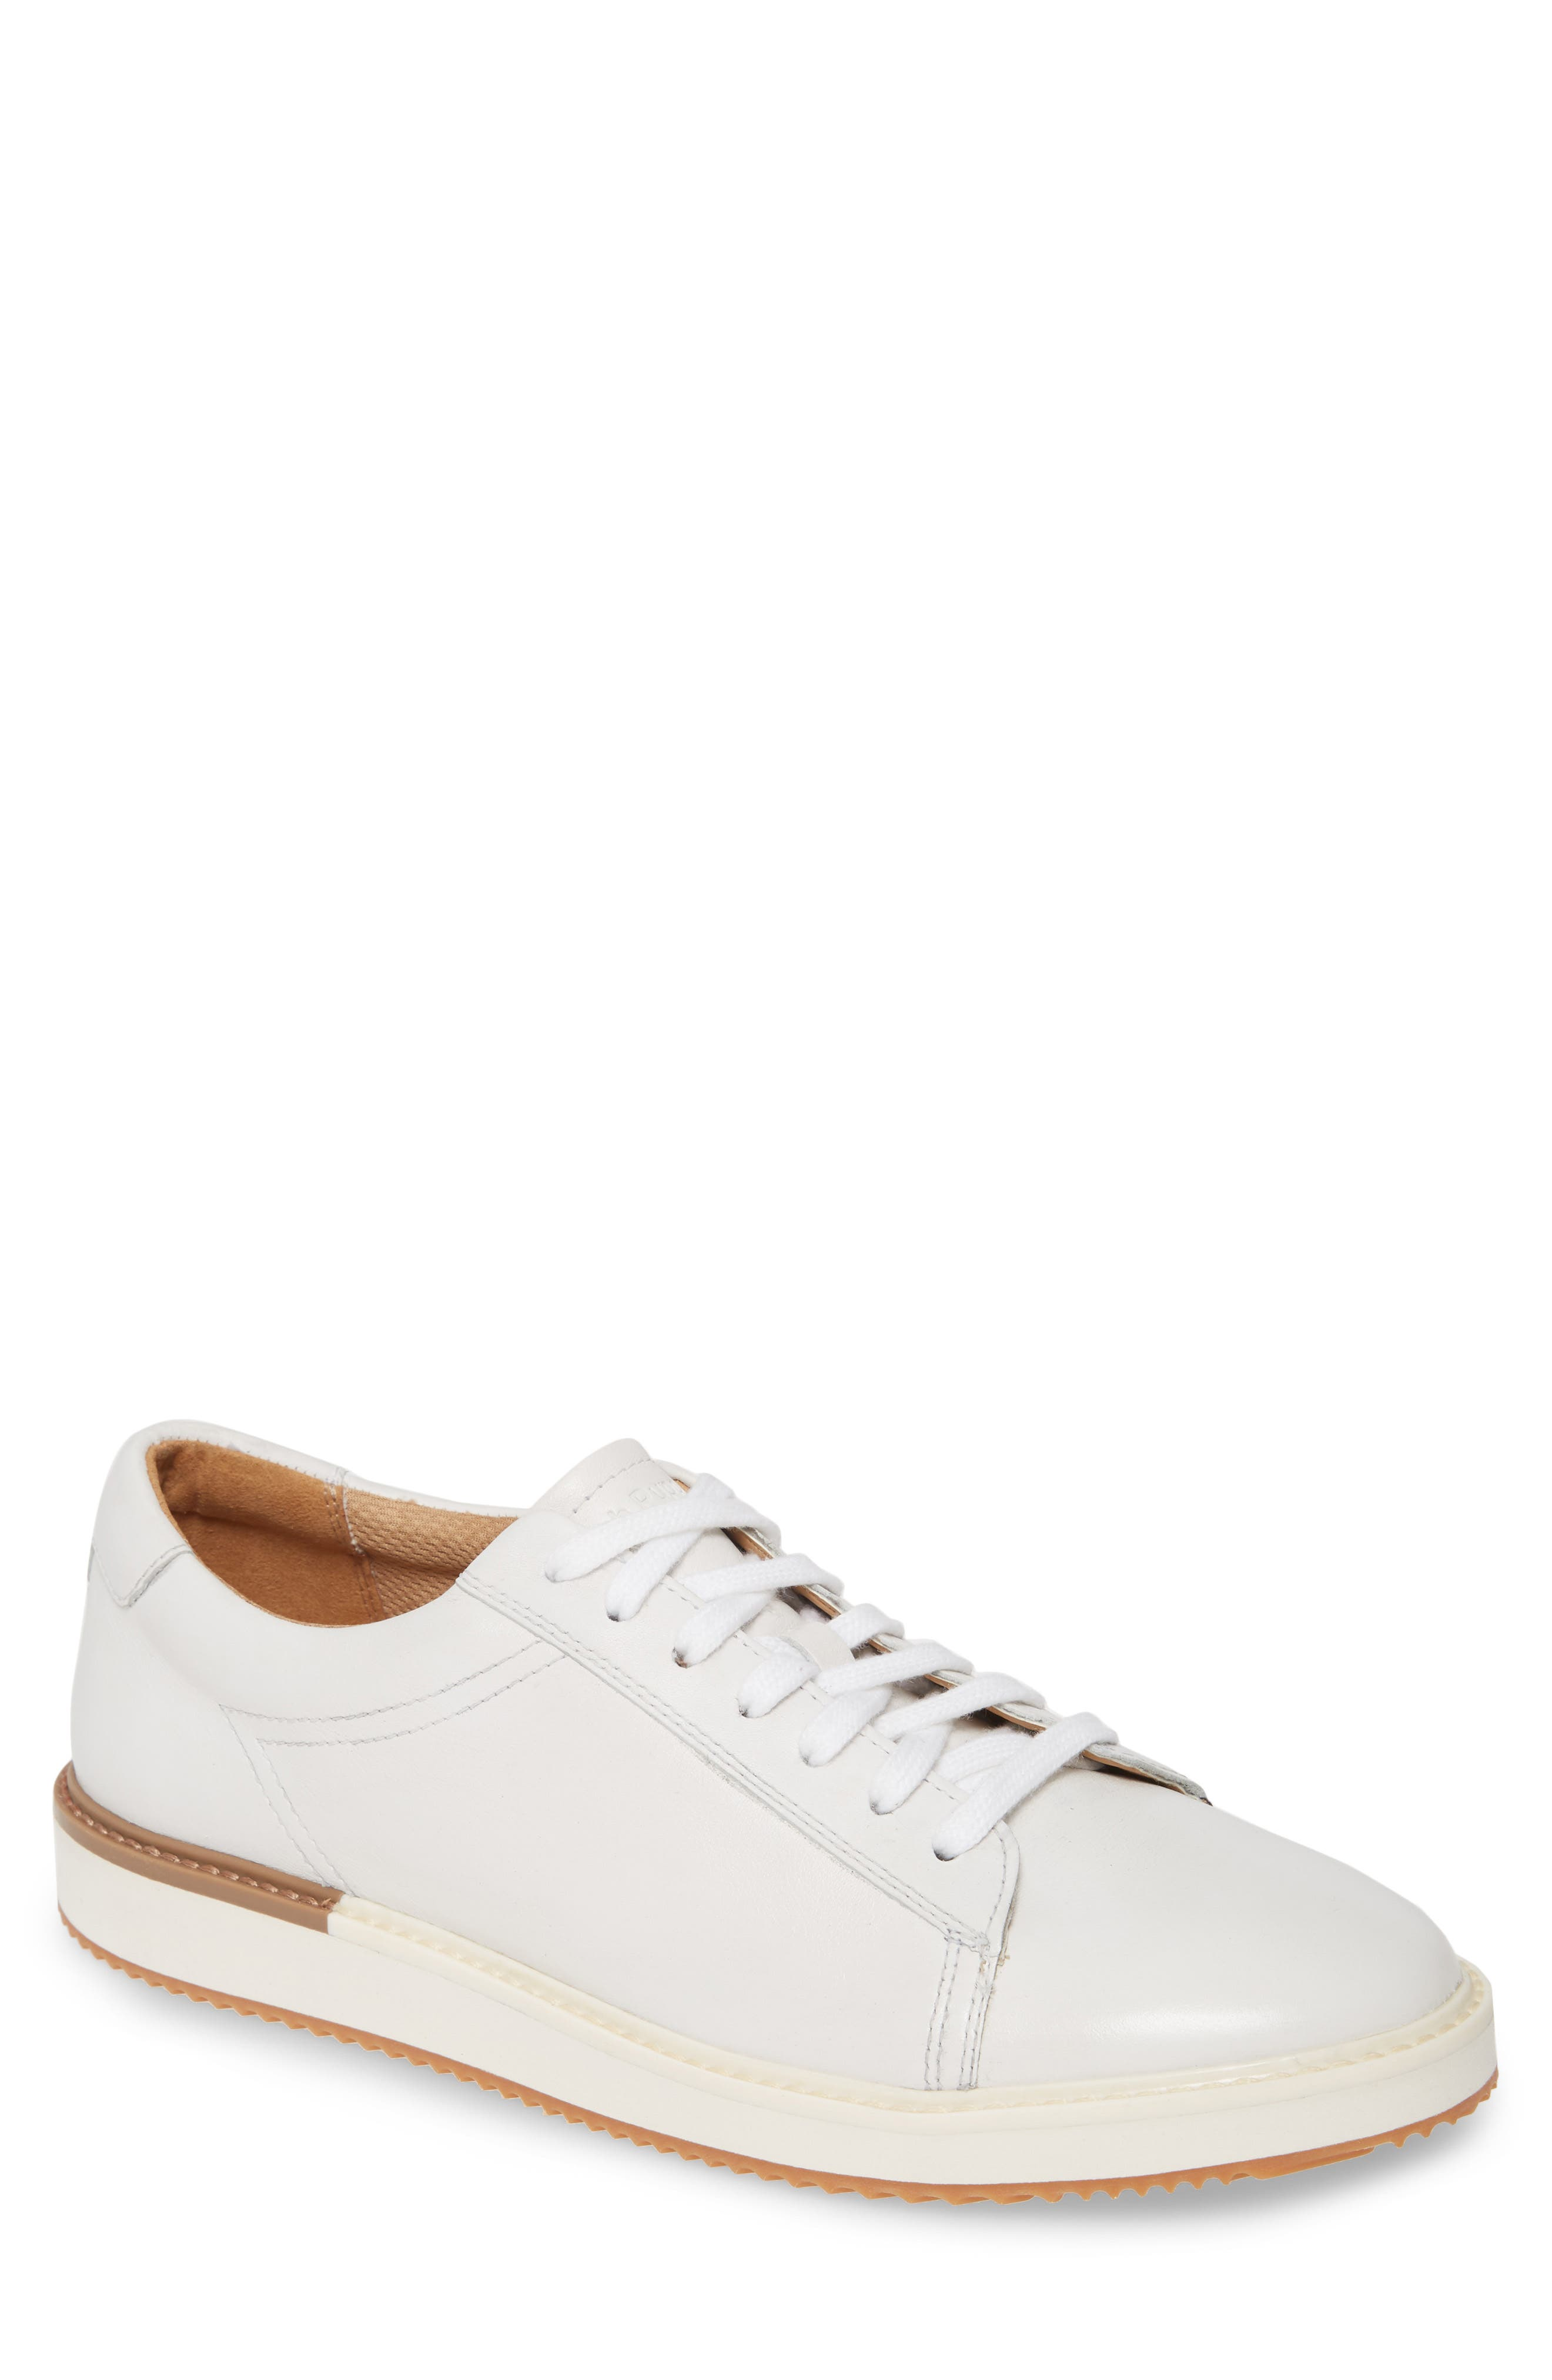 Men's Hush Puppies® All-White Sneakers